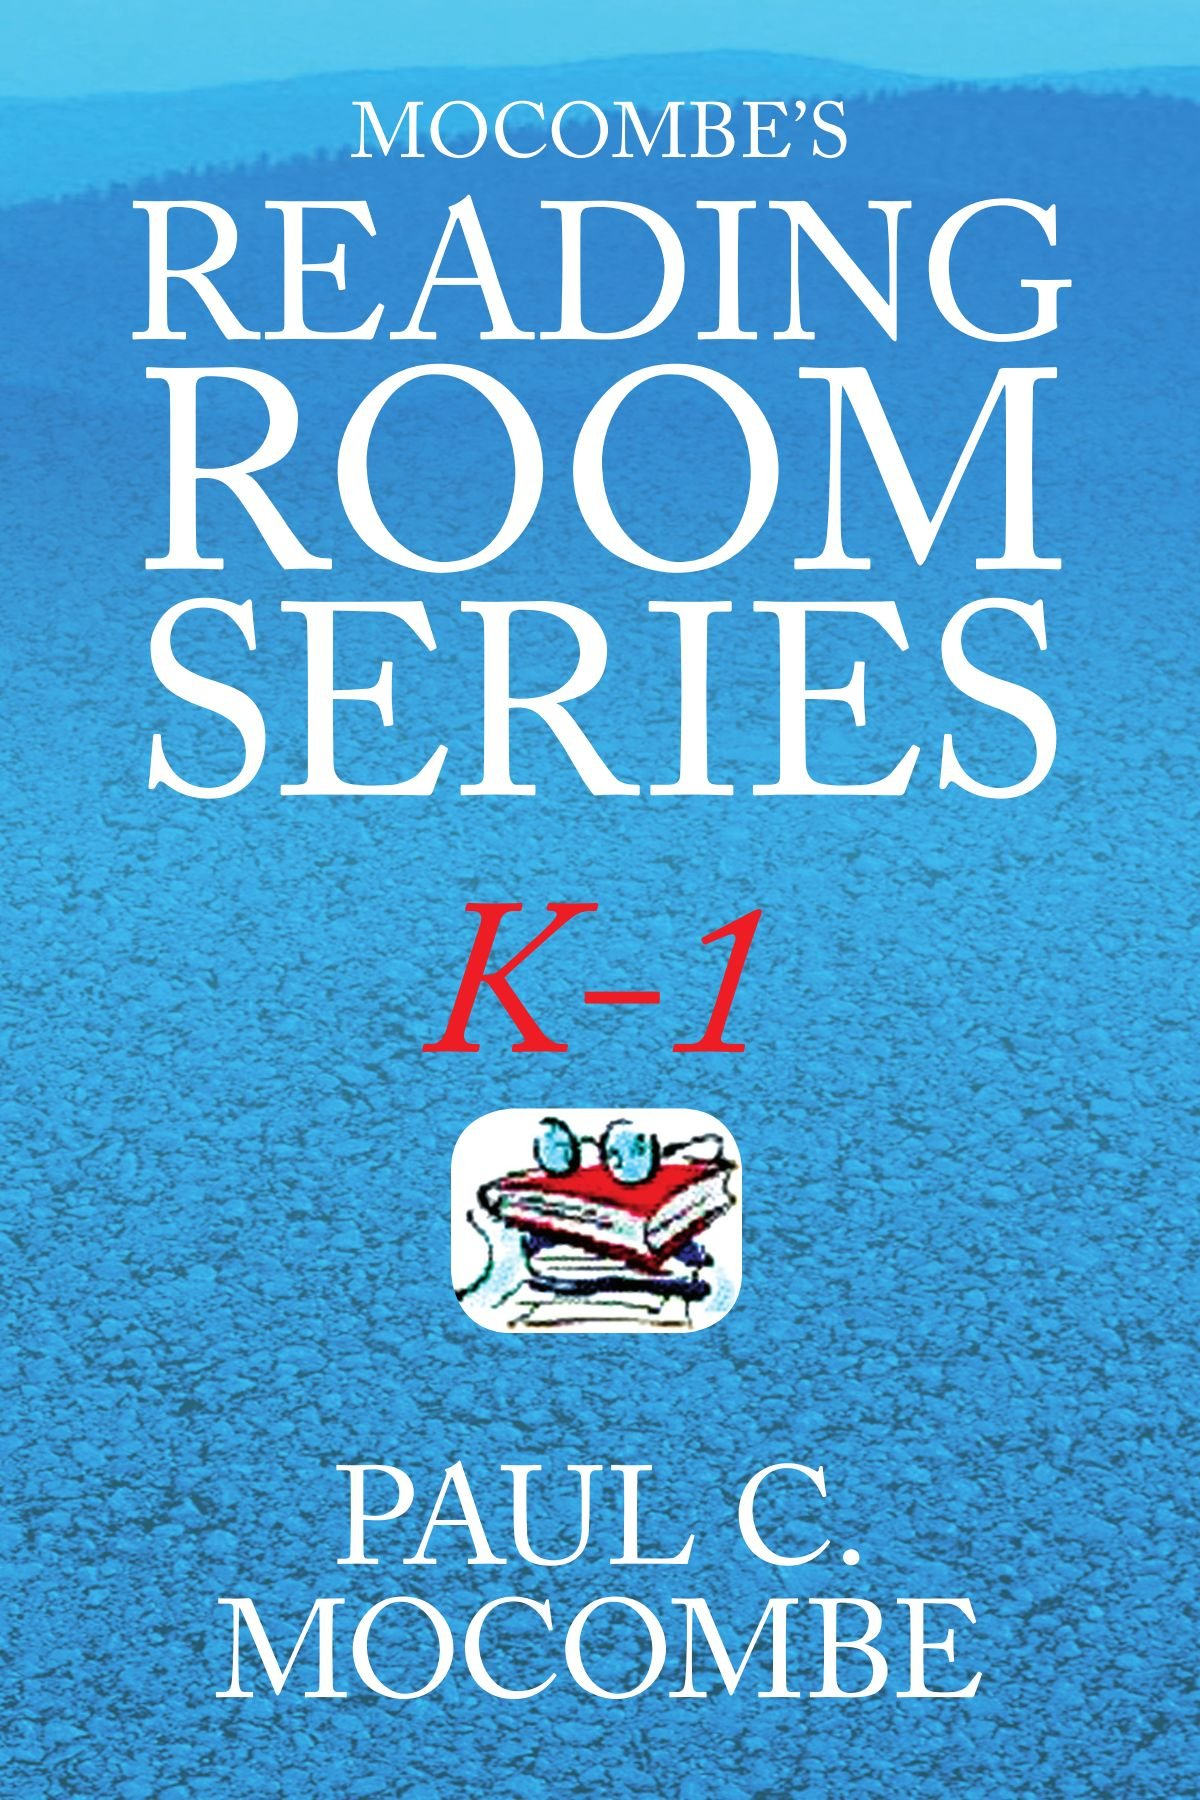 Mocombe's Reading Room Series K-1: K-1 pdf epub